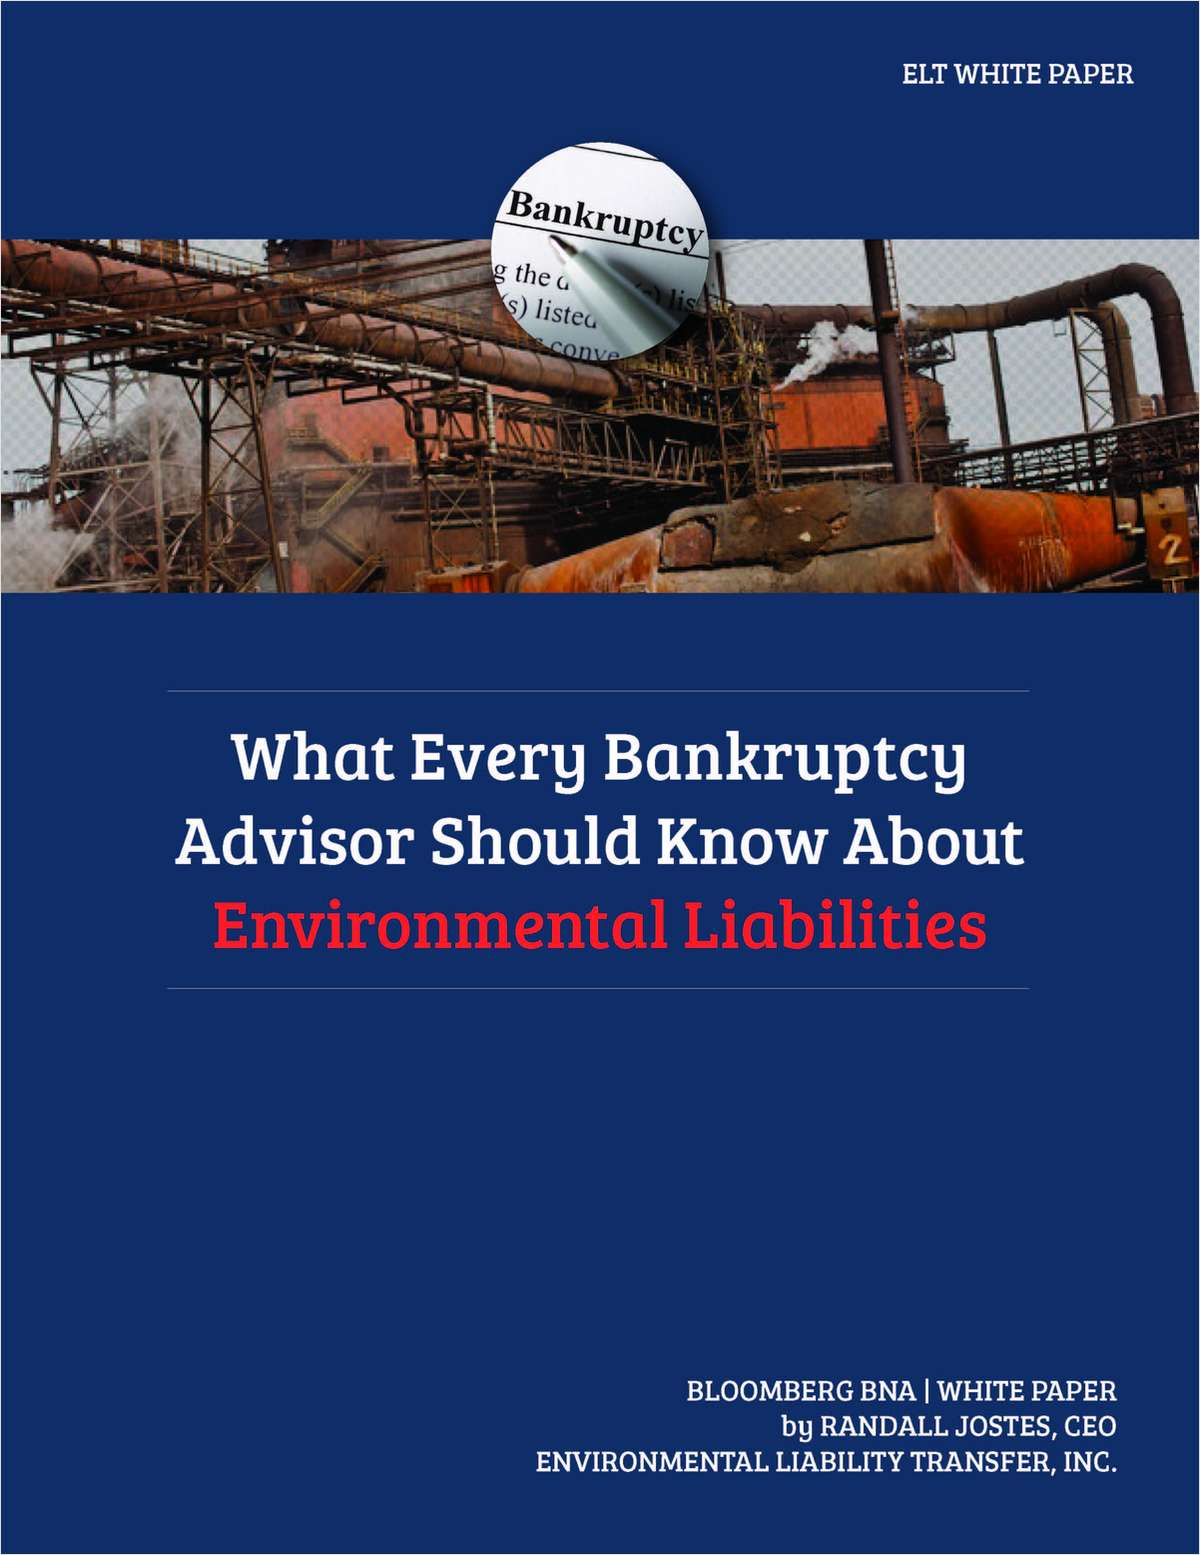 What Every Bankruptcy Advisor Should Know About Environmental Liabilities